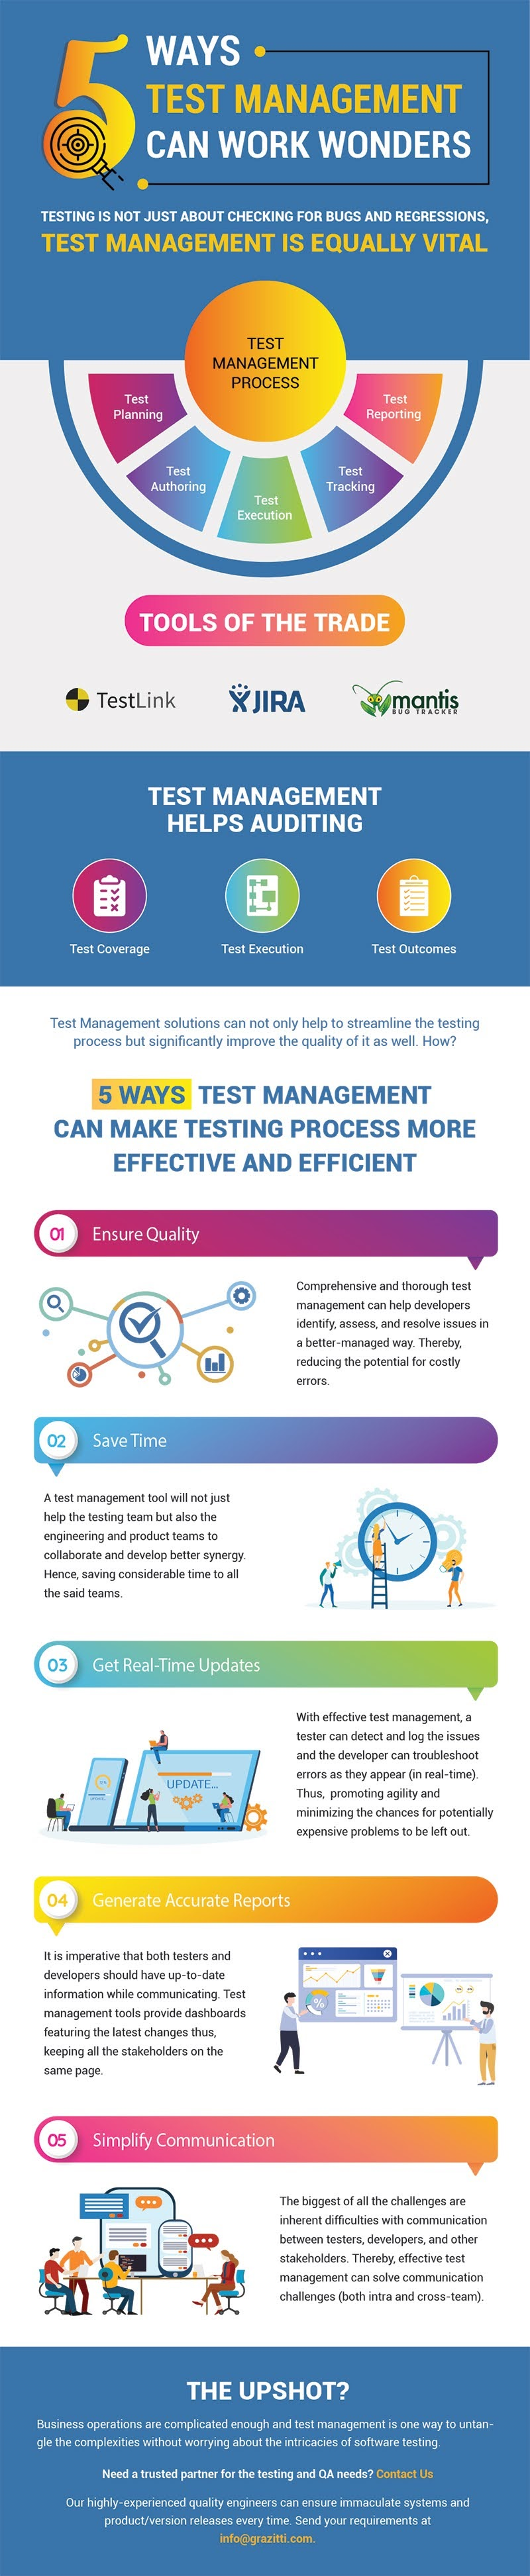 5-ways-test-management-can-work-wonders-infographic